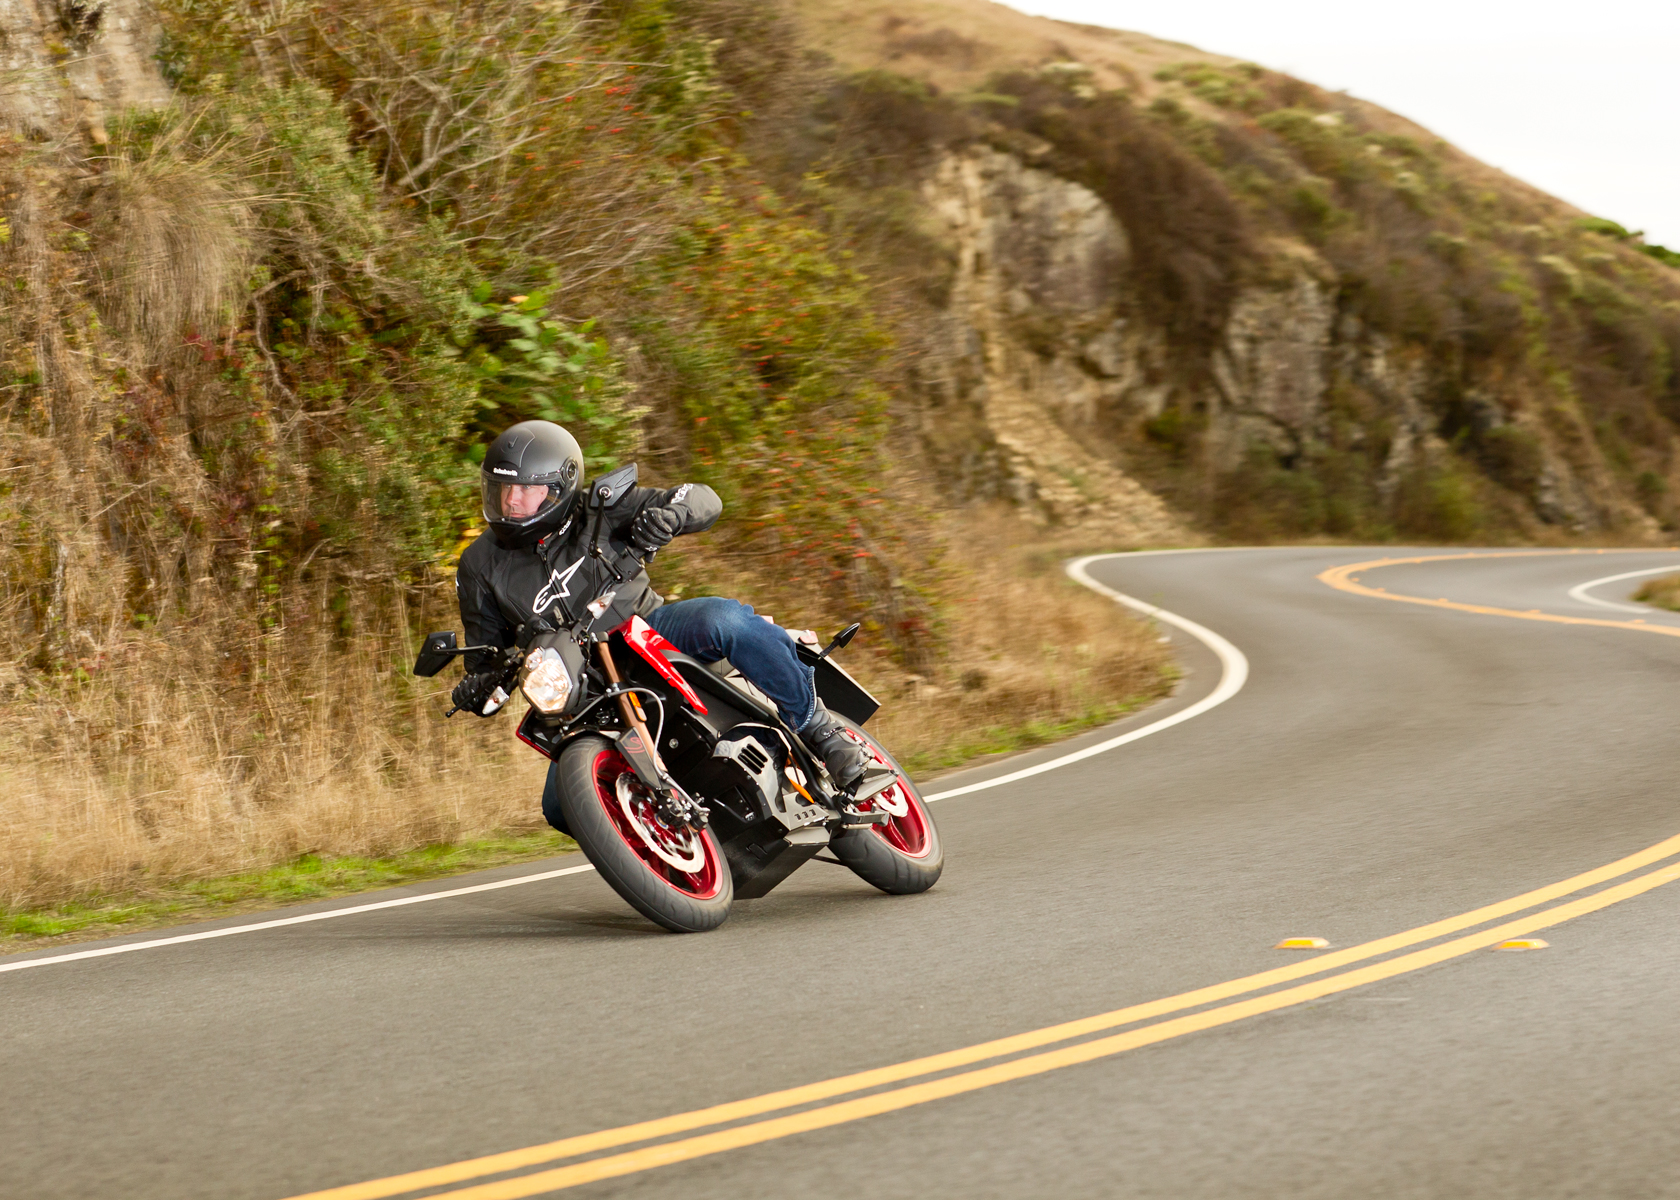 '.2012 Zero S Electric Motorcycle: Lean Right.'